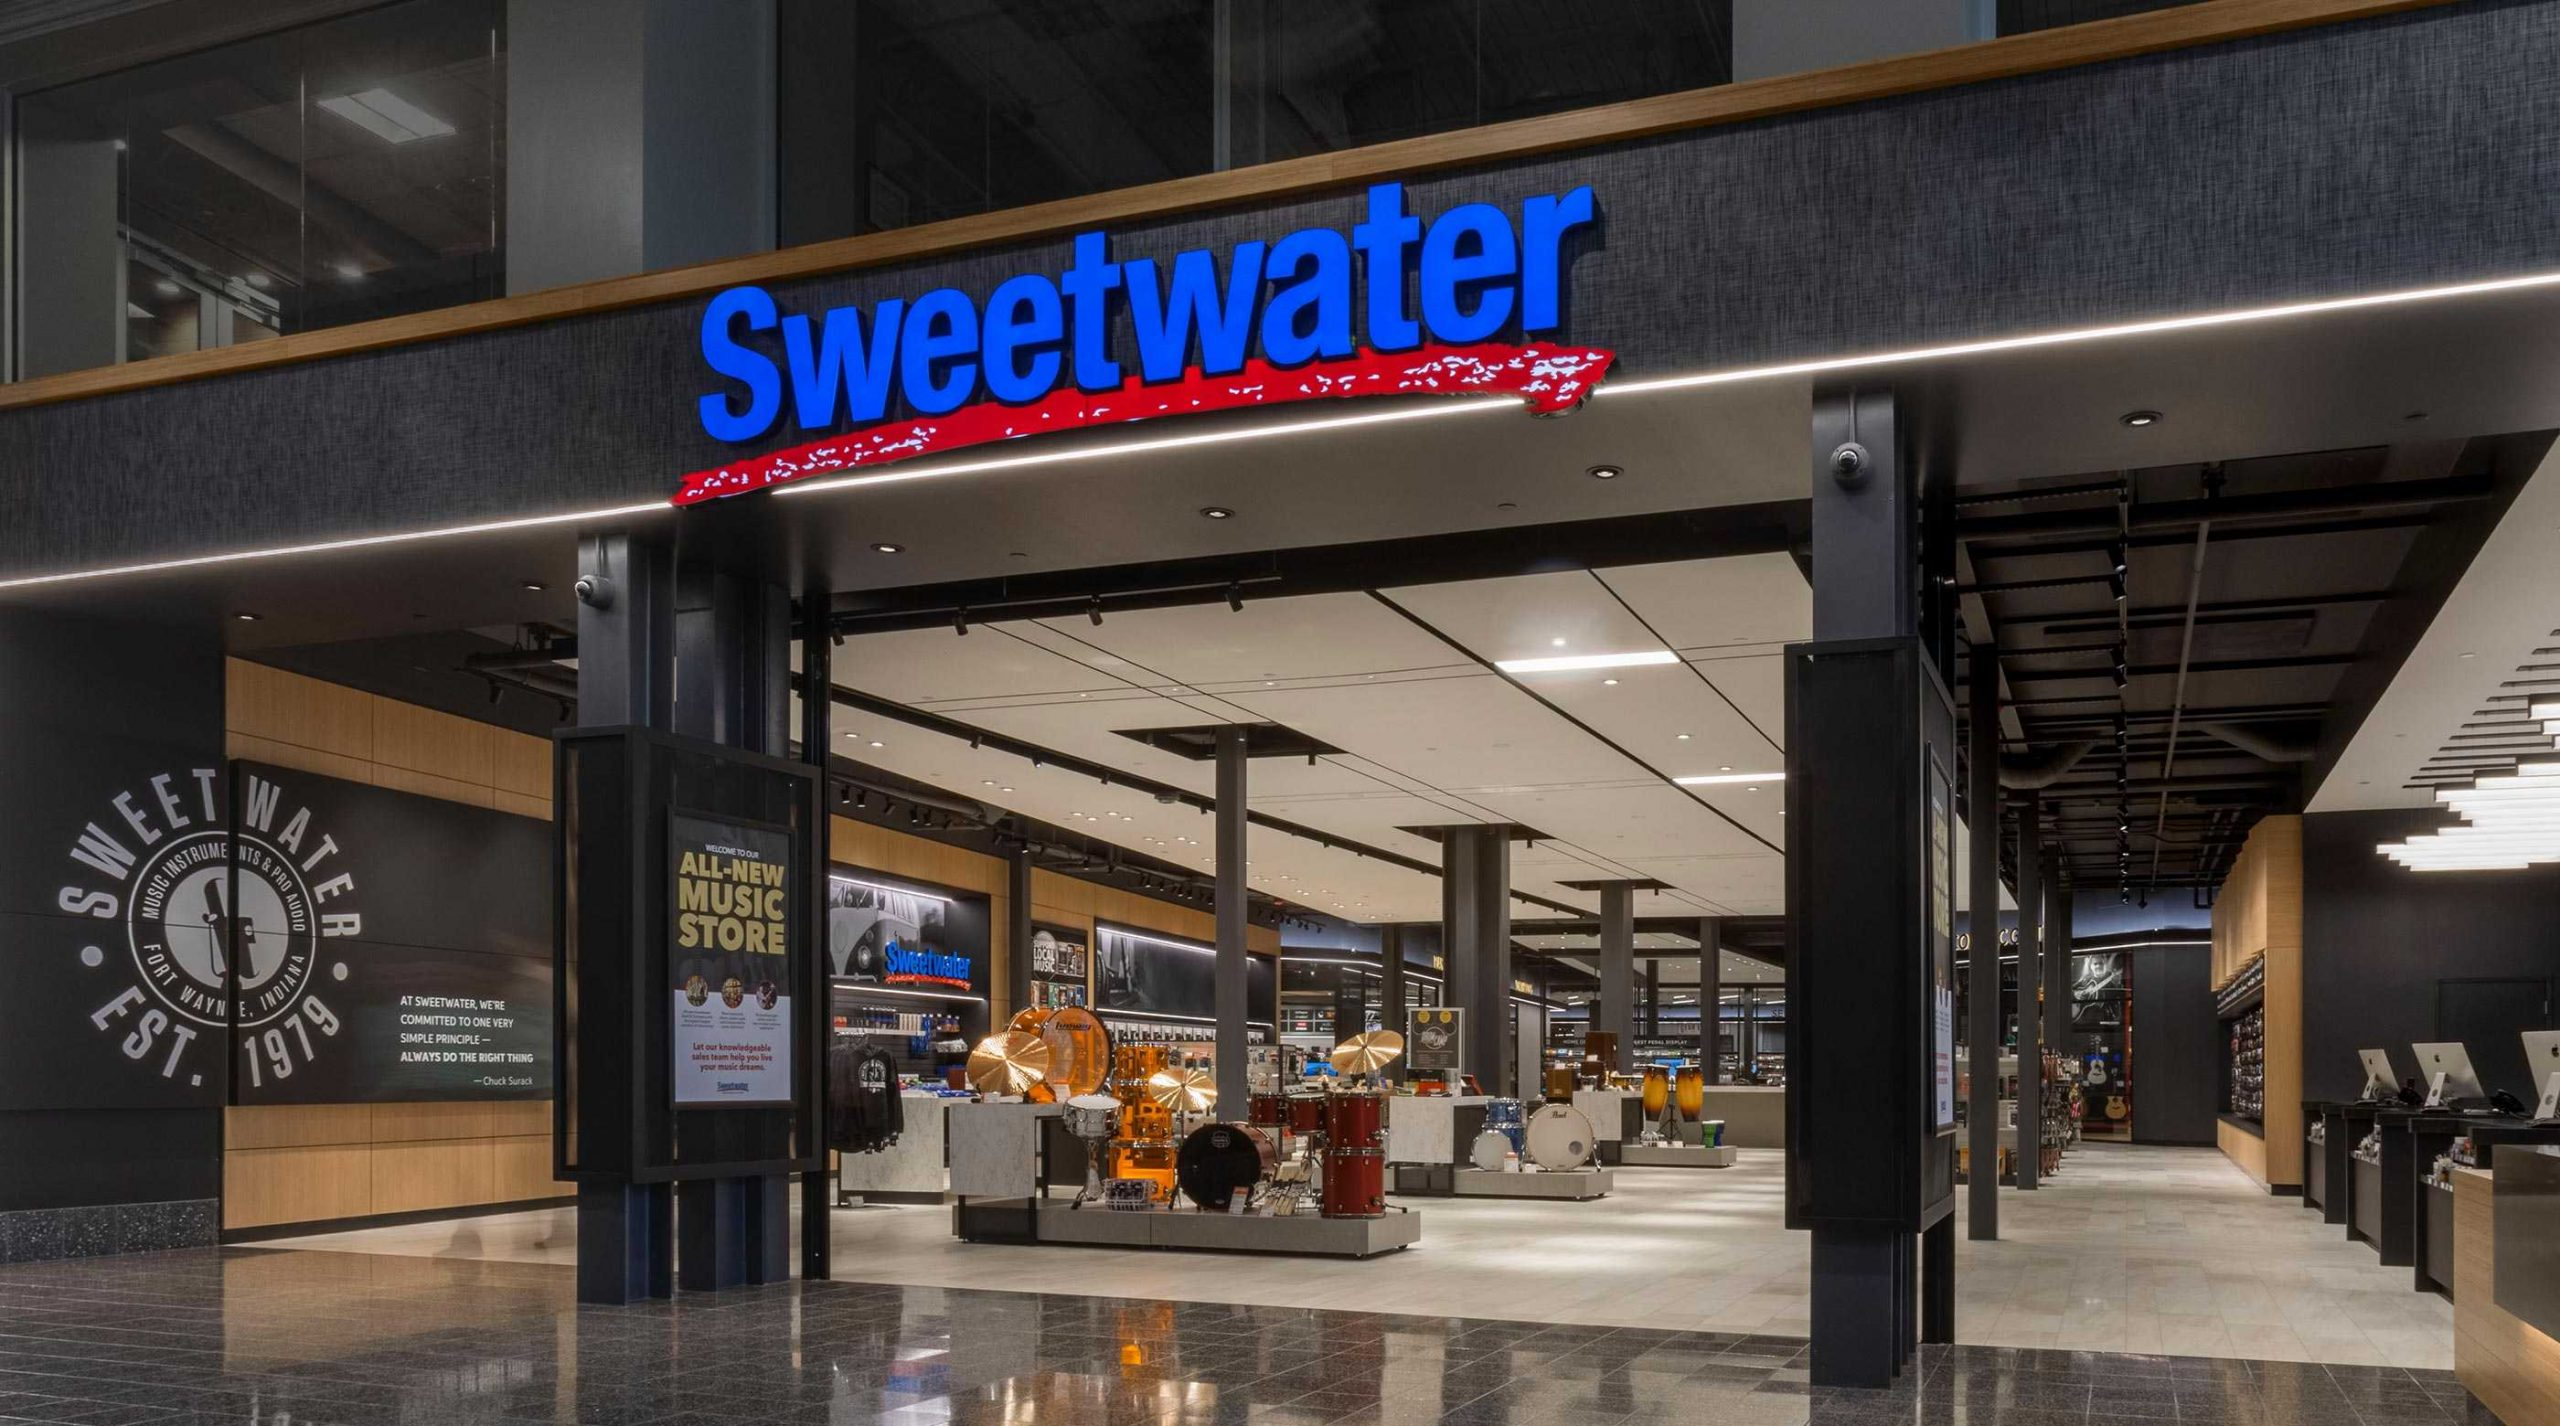 Sweetwater store Ft. Wayne Indiana